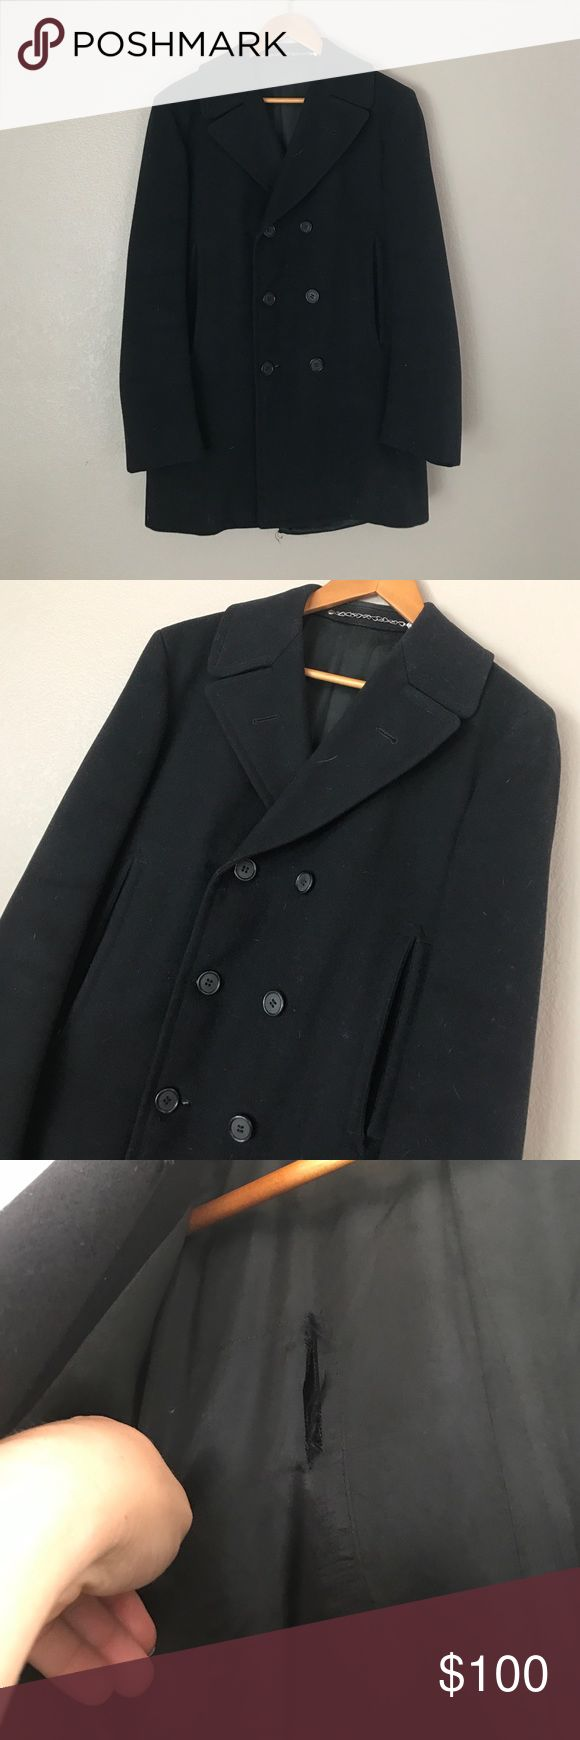 Men's Wool Pea Coat Vintage Men's Pea Coat // Size L // tear in lining (see pic) and lining needs to be re-stitched on bottom Jackets & Coats Pea Coats